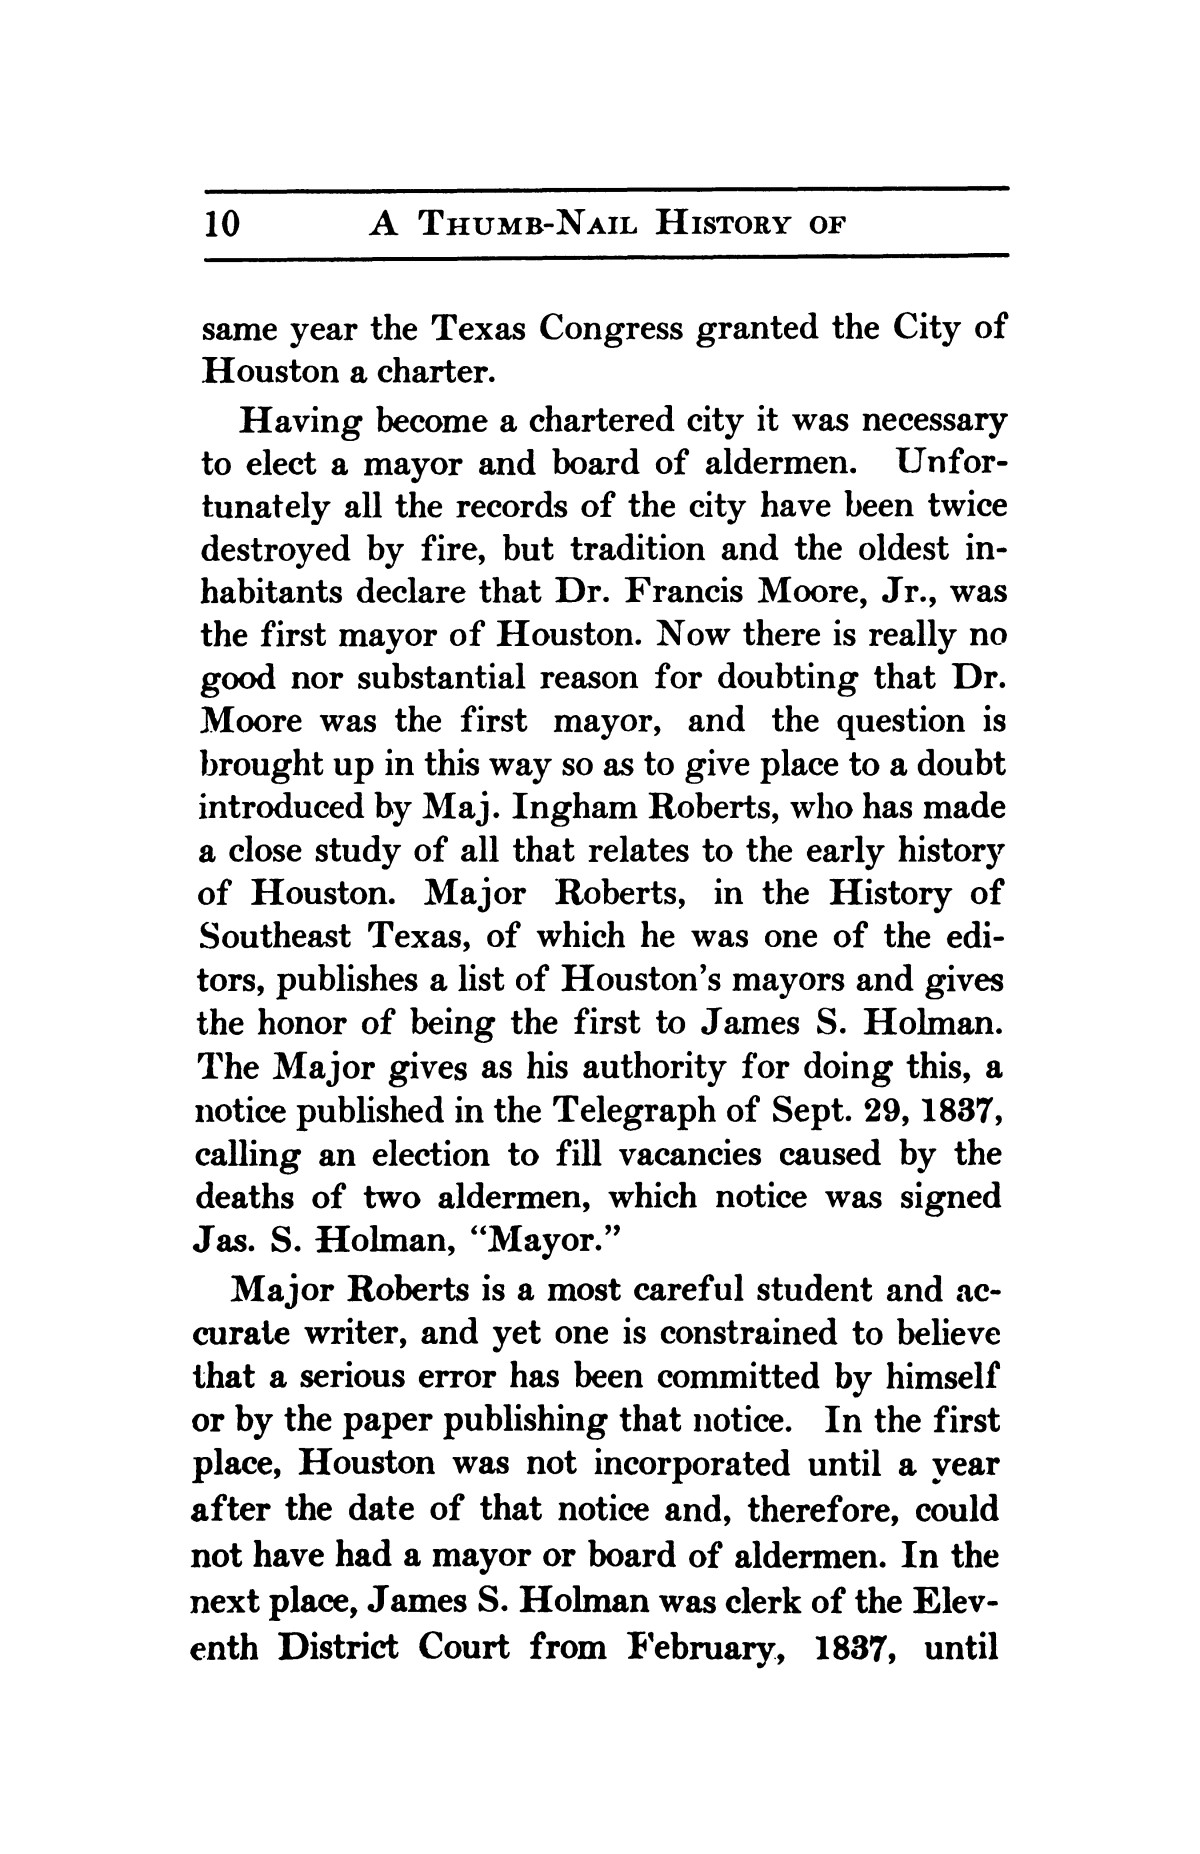 A thumb-nail history of the city of Houston, Texas, from its founding in 1836 to the year 1912                                                                                                      10